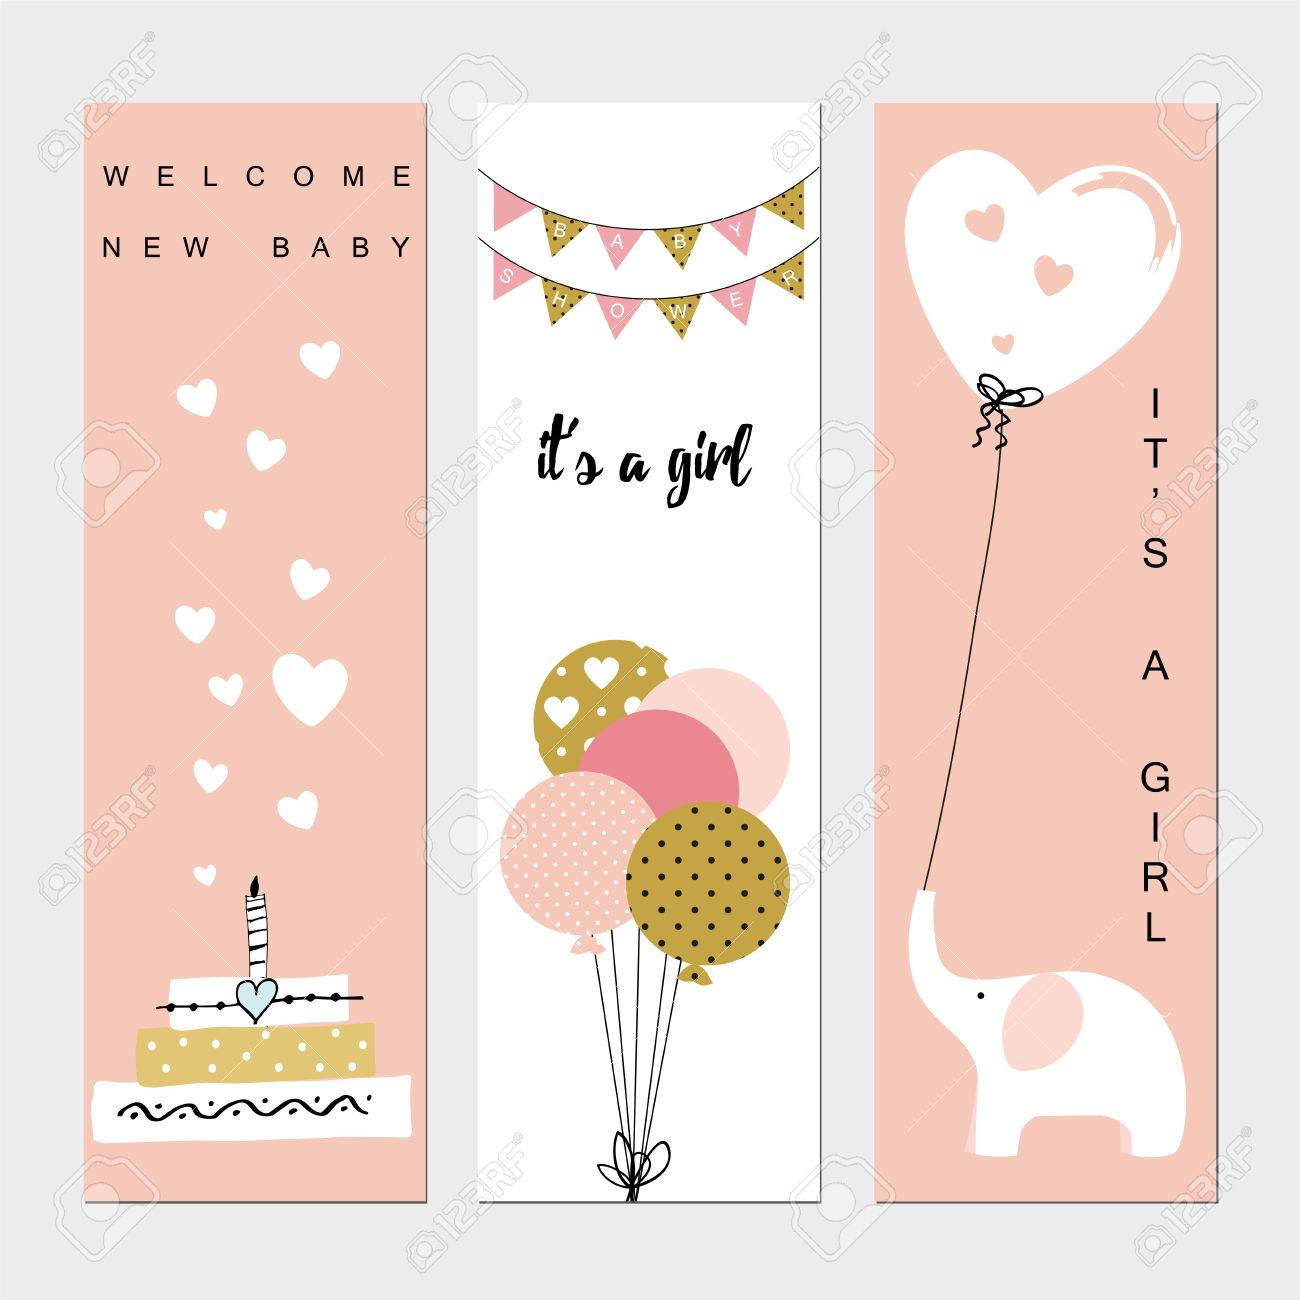 baby shower banners for the baby girl royalty free cliparts vectors